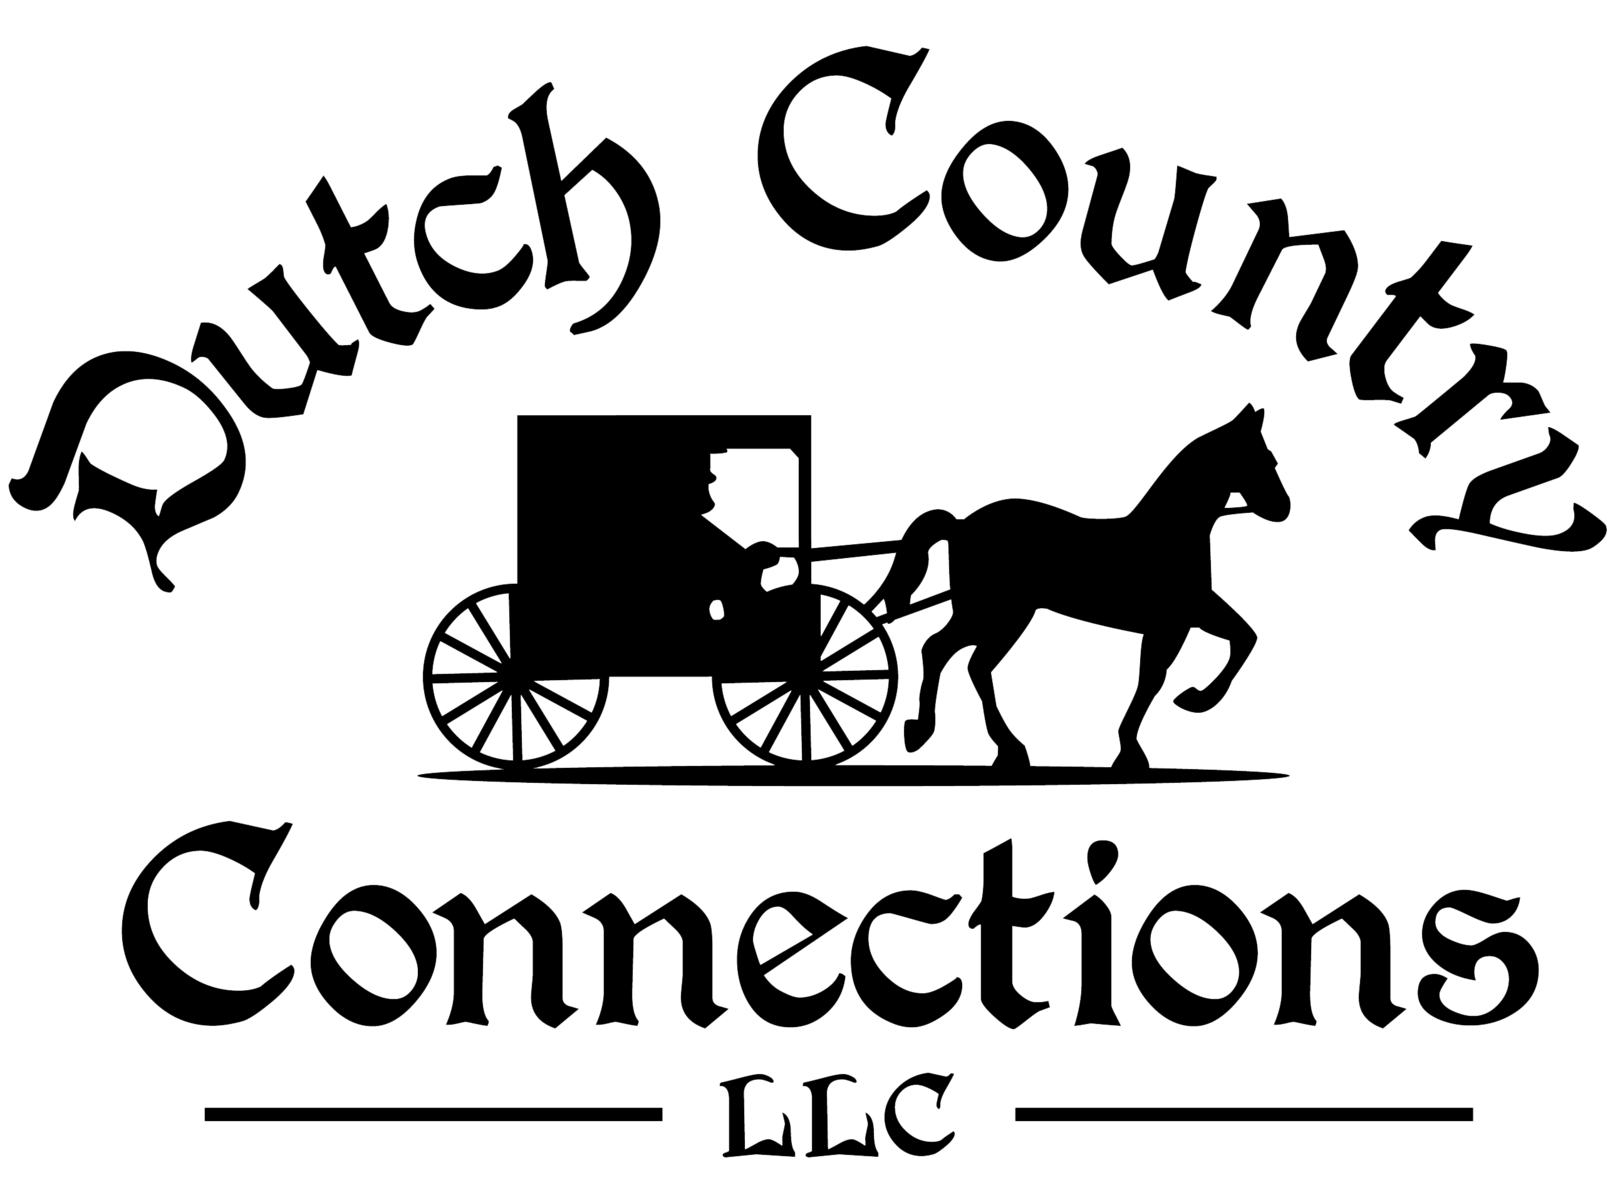 Daily Gazette - Dutch Country Connections